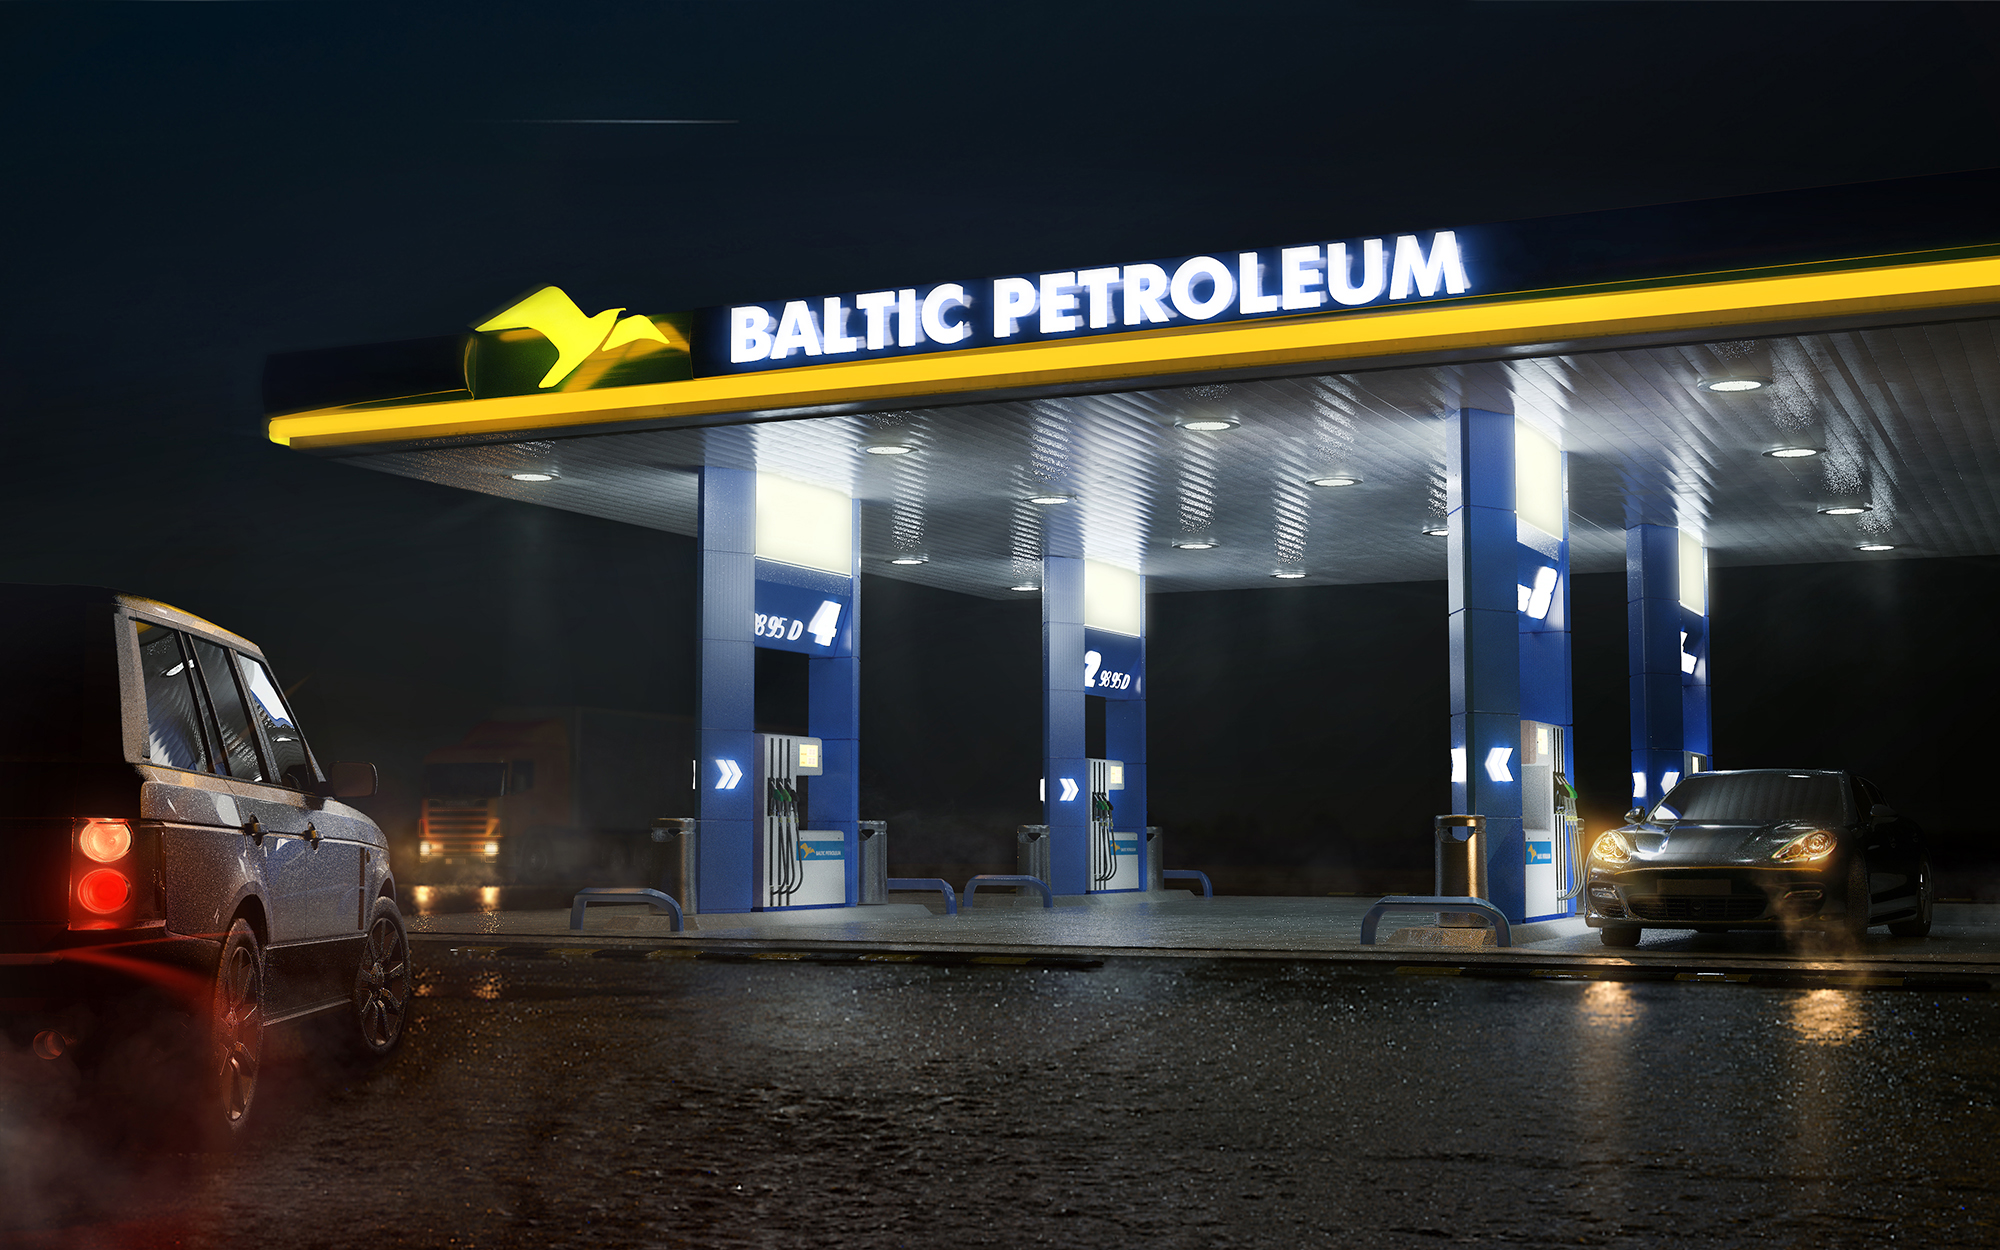 Baltic Petroleum gas station vizualisation